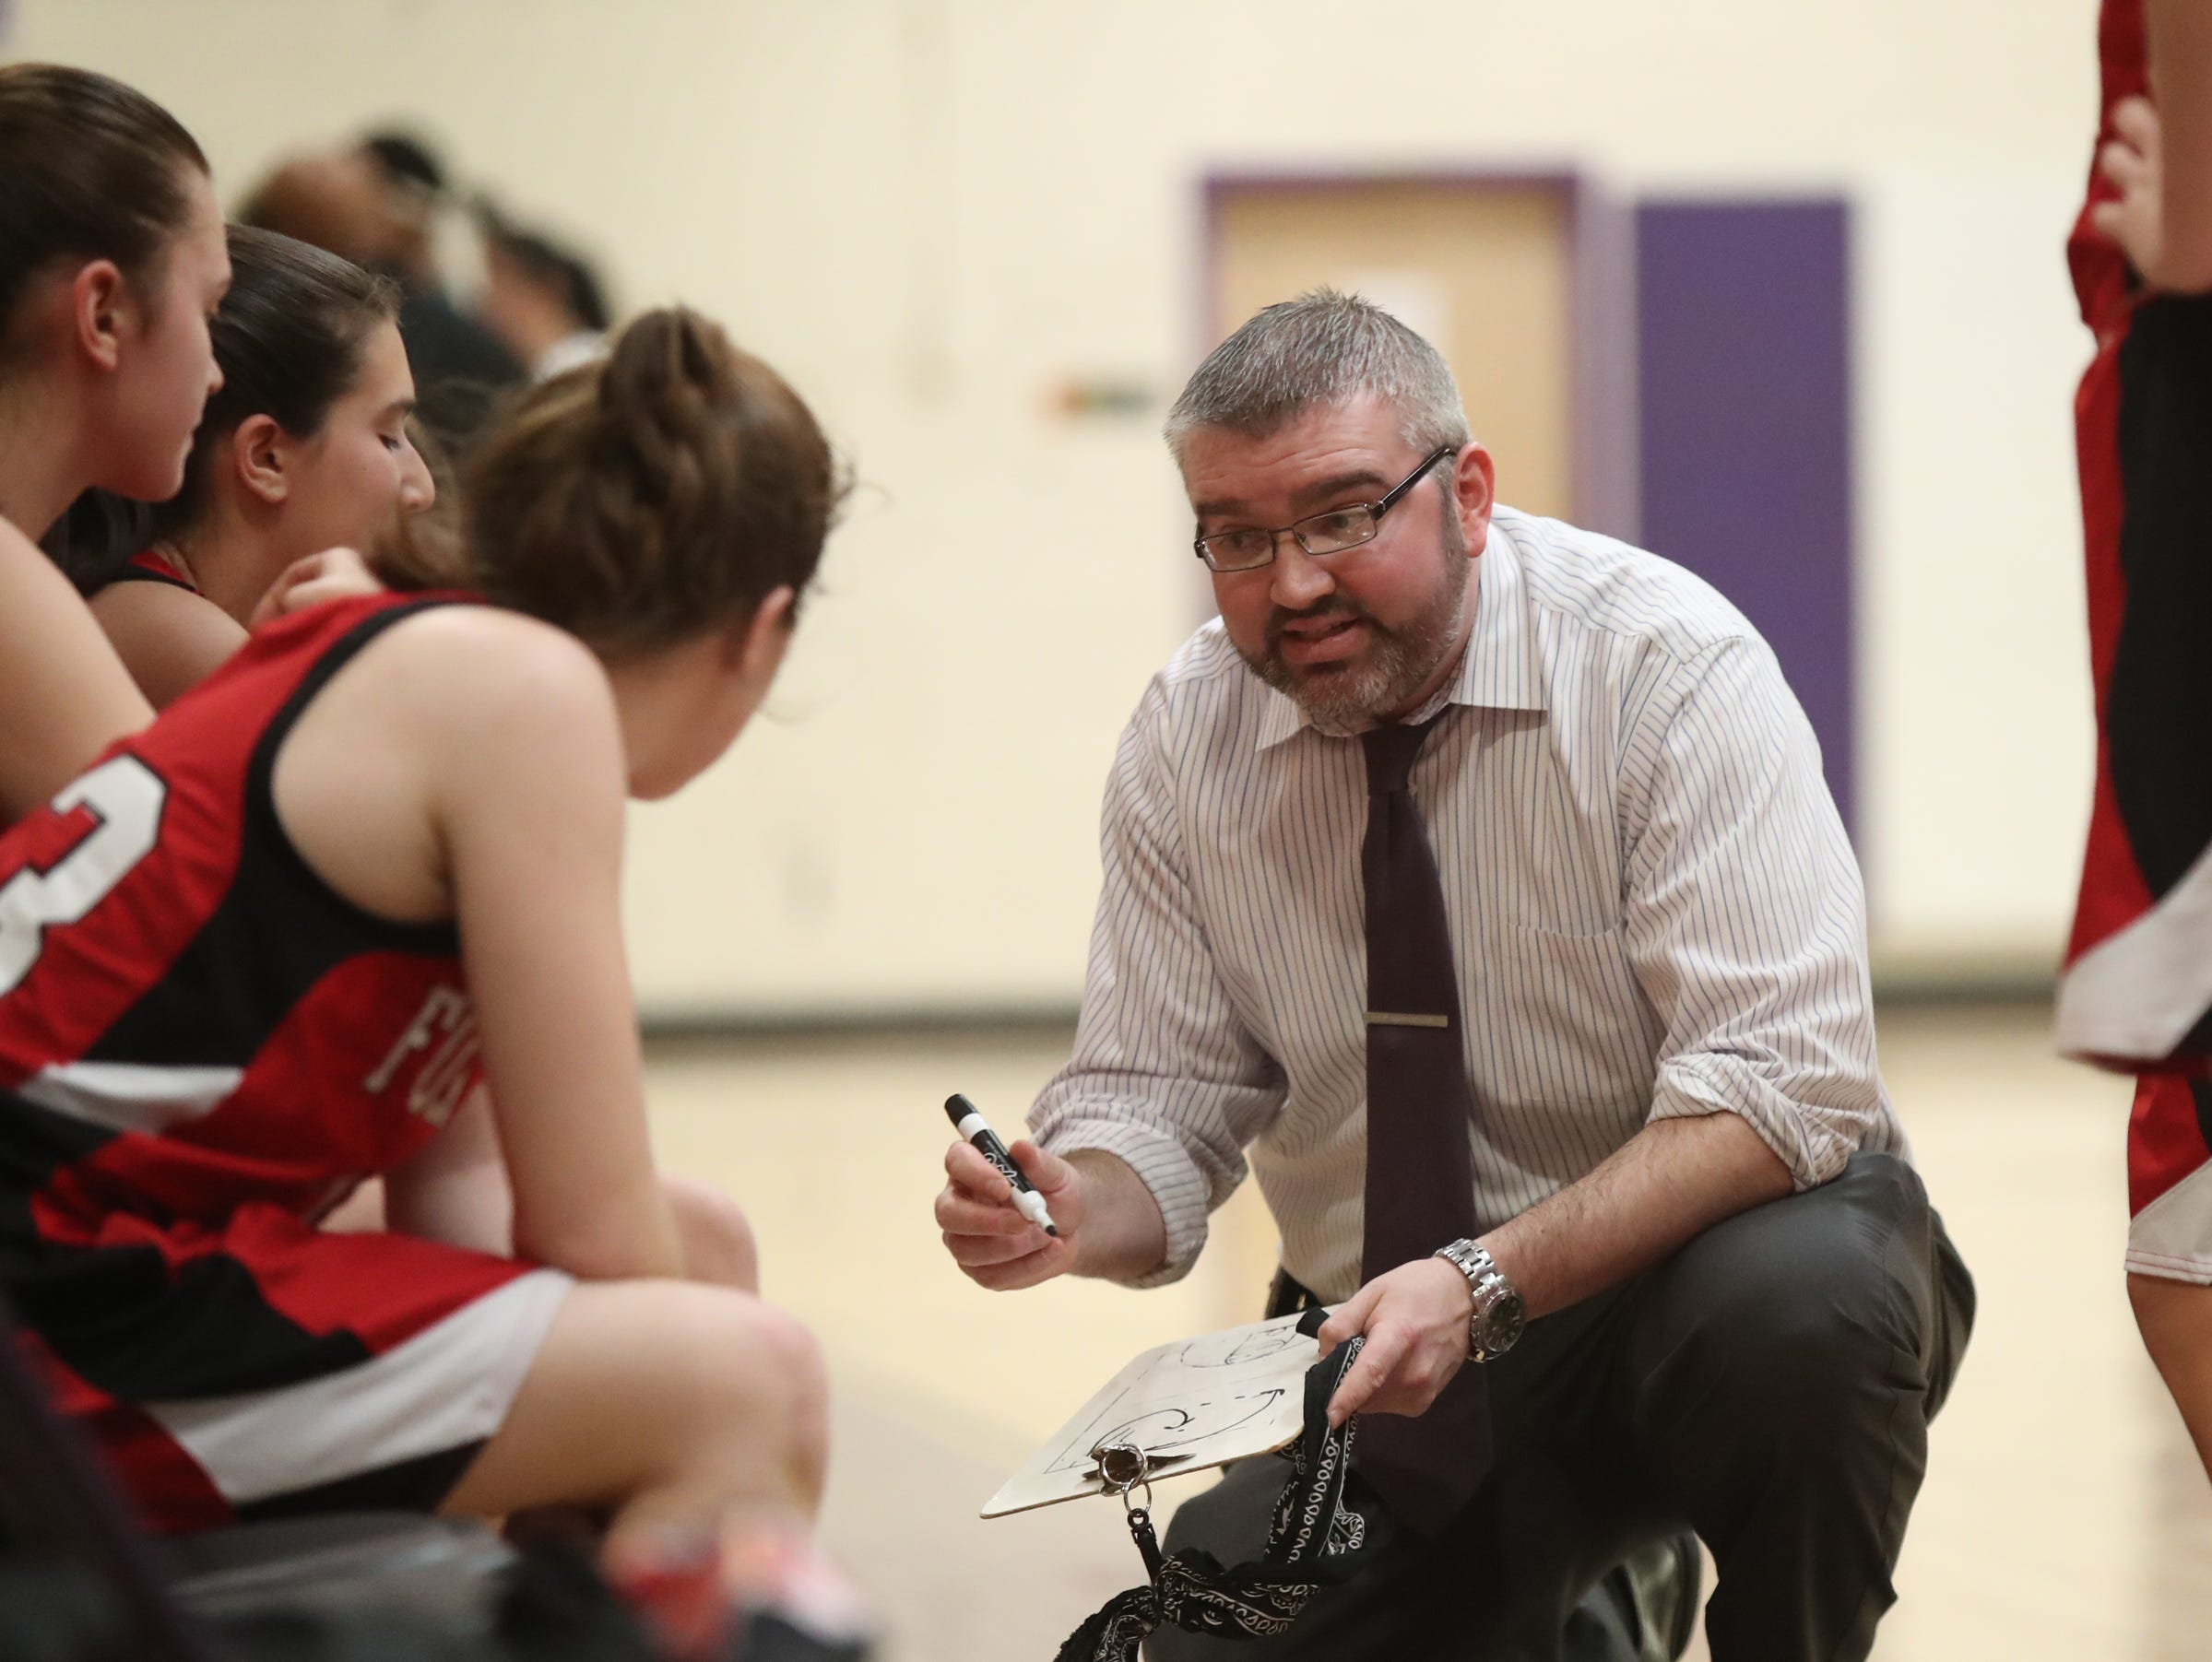 Fox Lane head coach Kriss Matts goes over a play during a time-out in the class AA girls basketball outbracket game against New Rochelle at New Rochelle High School in New Rochelle on Saturday, February 16, 2019.